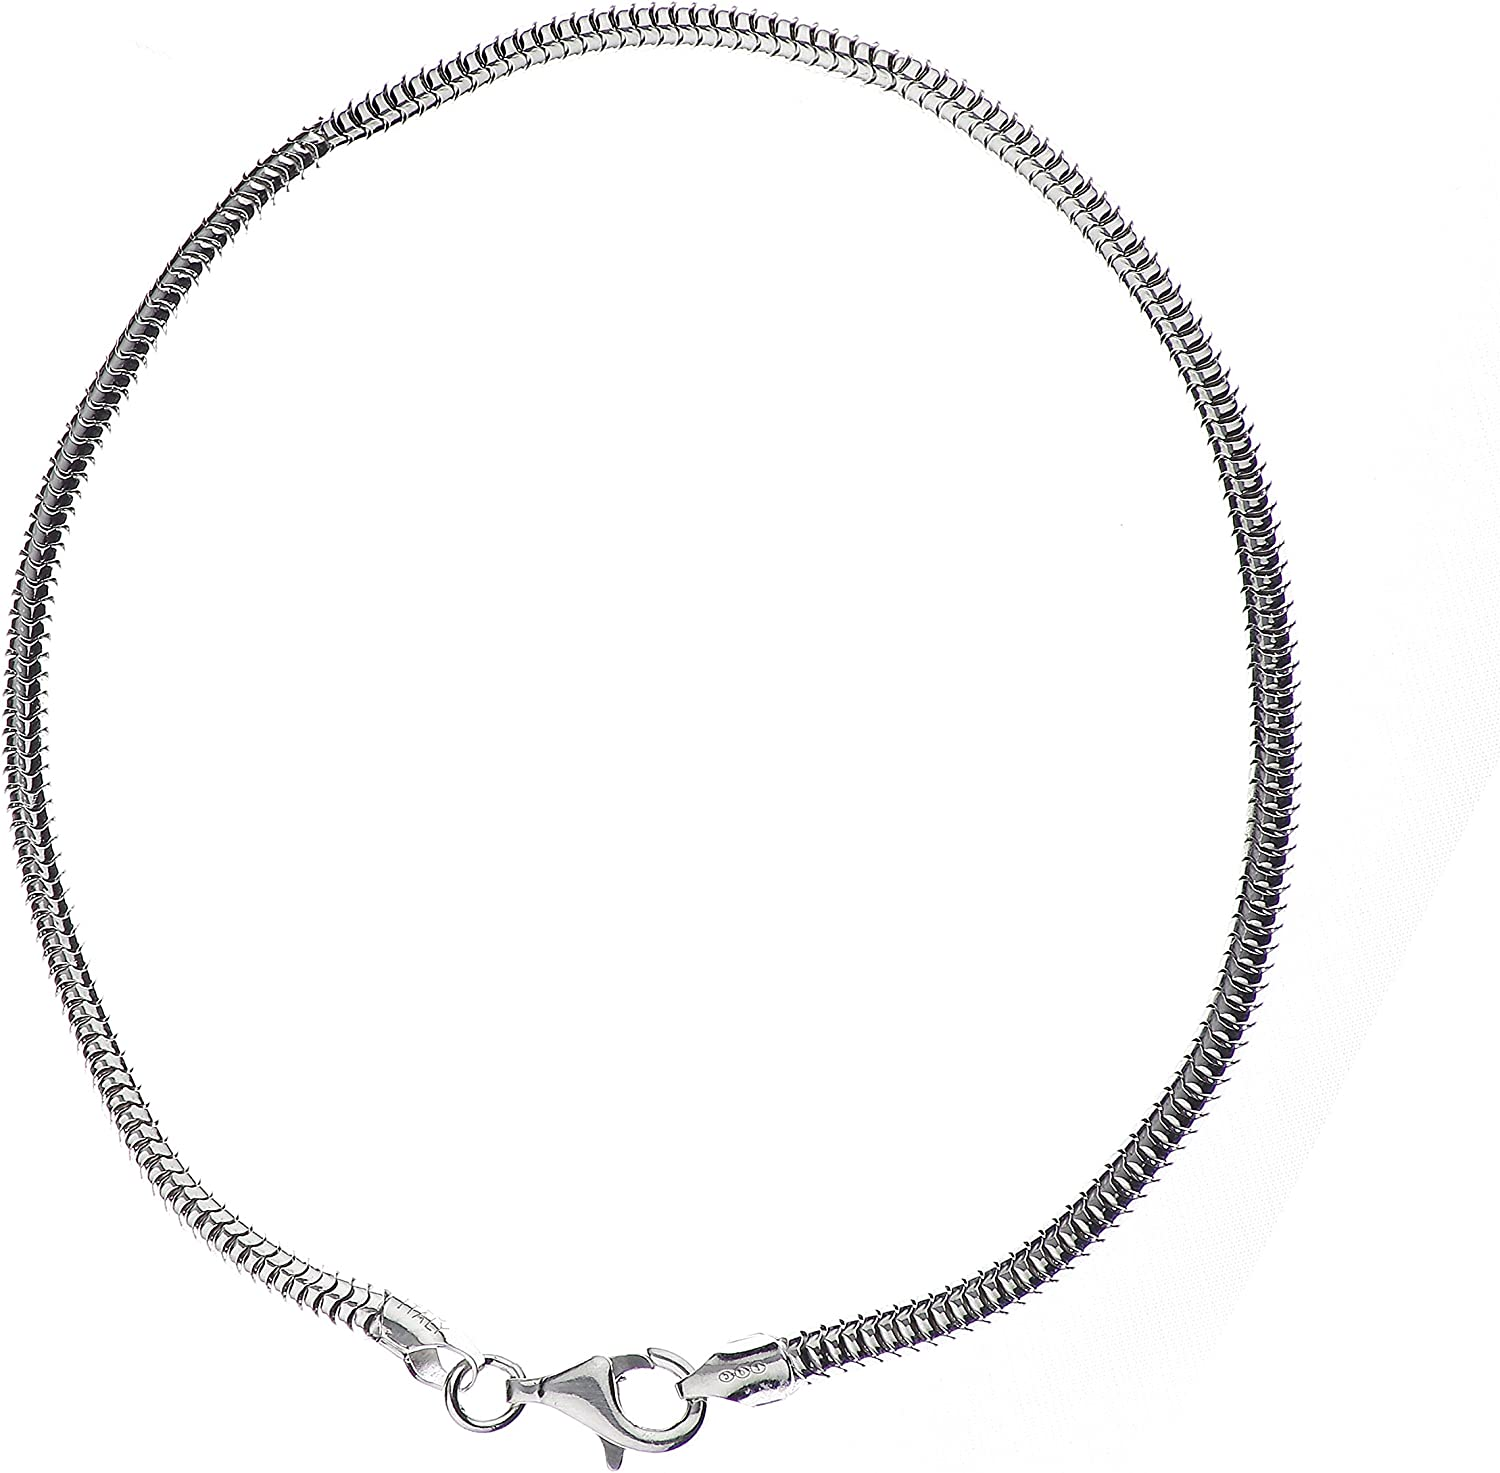 Italian Quality Chain New mail order 925 Sterling low-pricing Real Snake Cha Silver